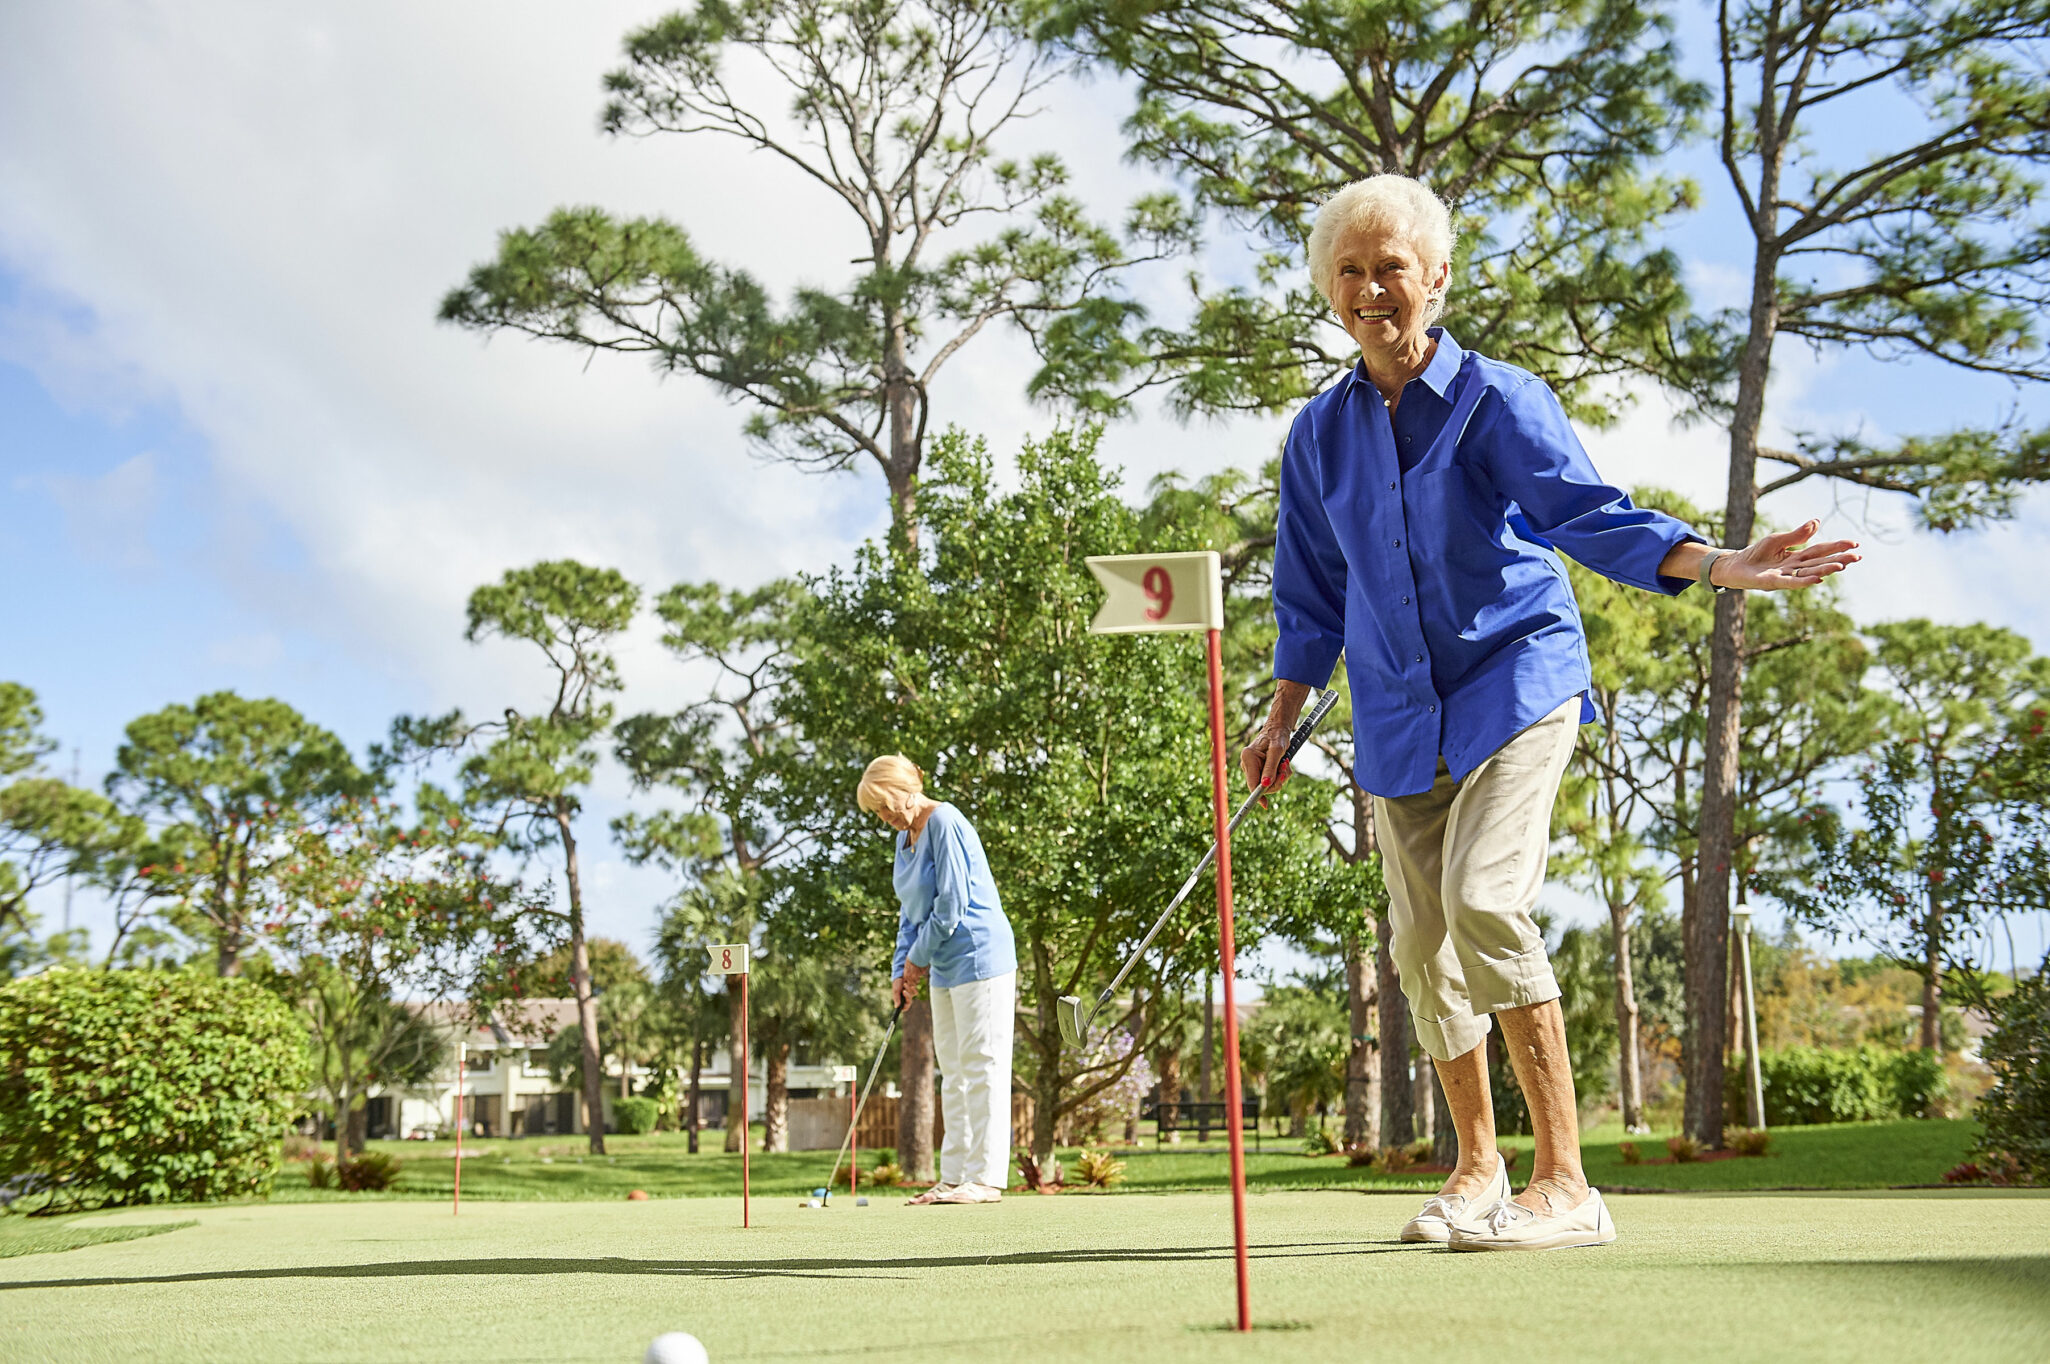 How to Evaluate Services & Amenities in Your Senior Living Search